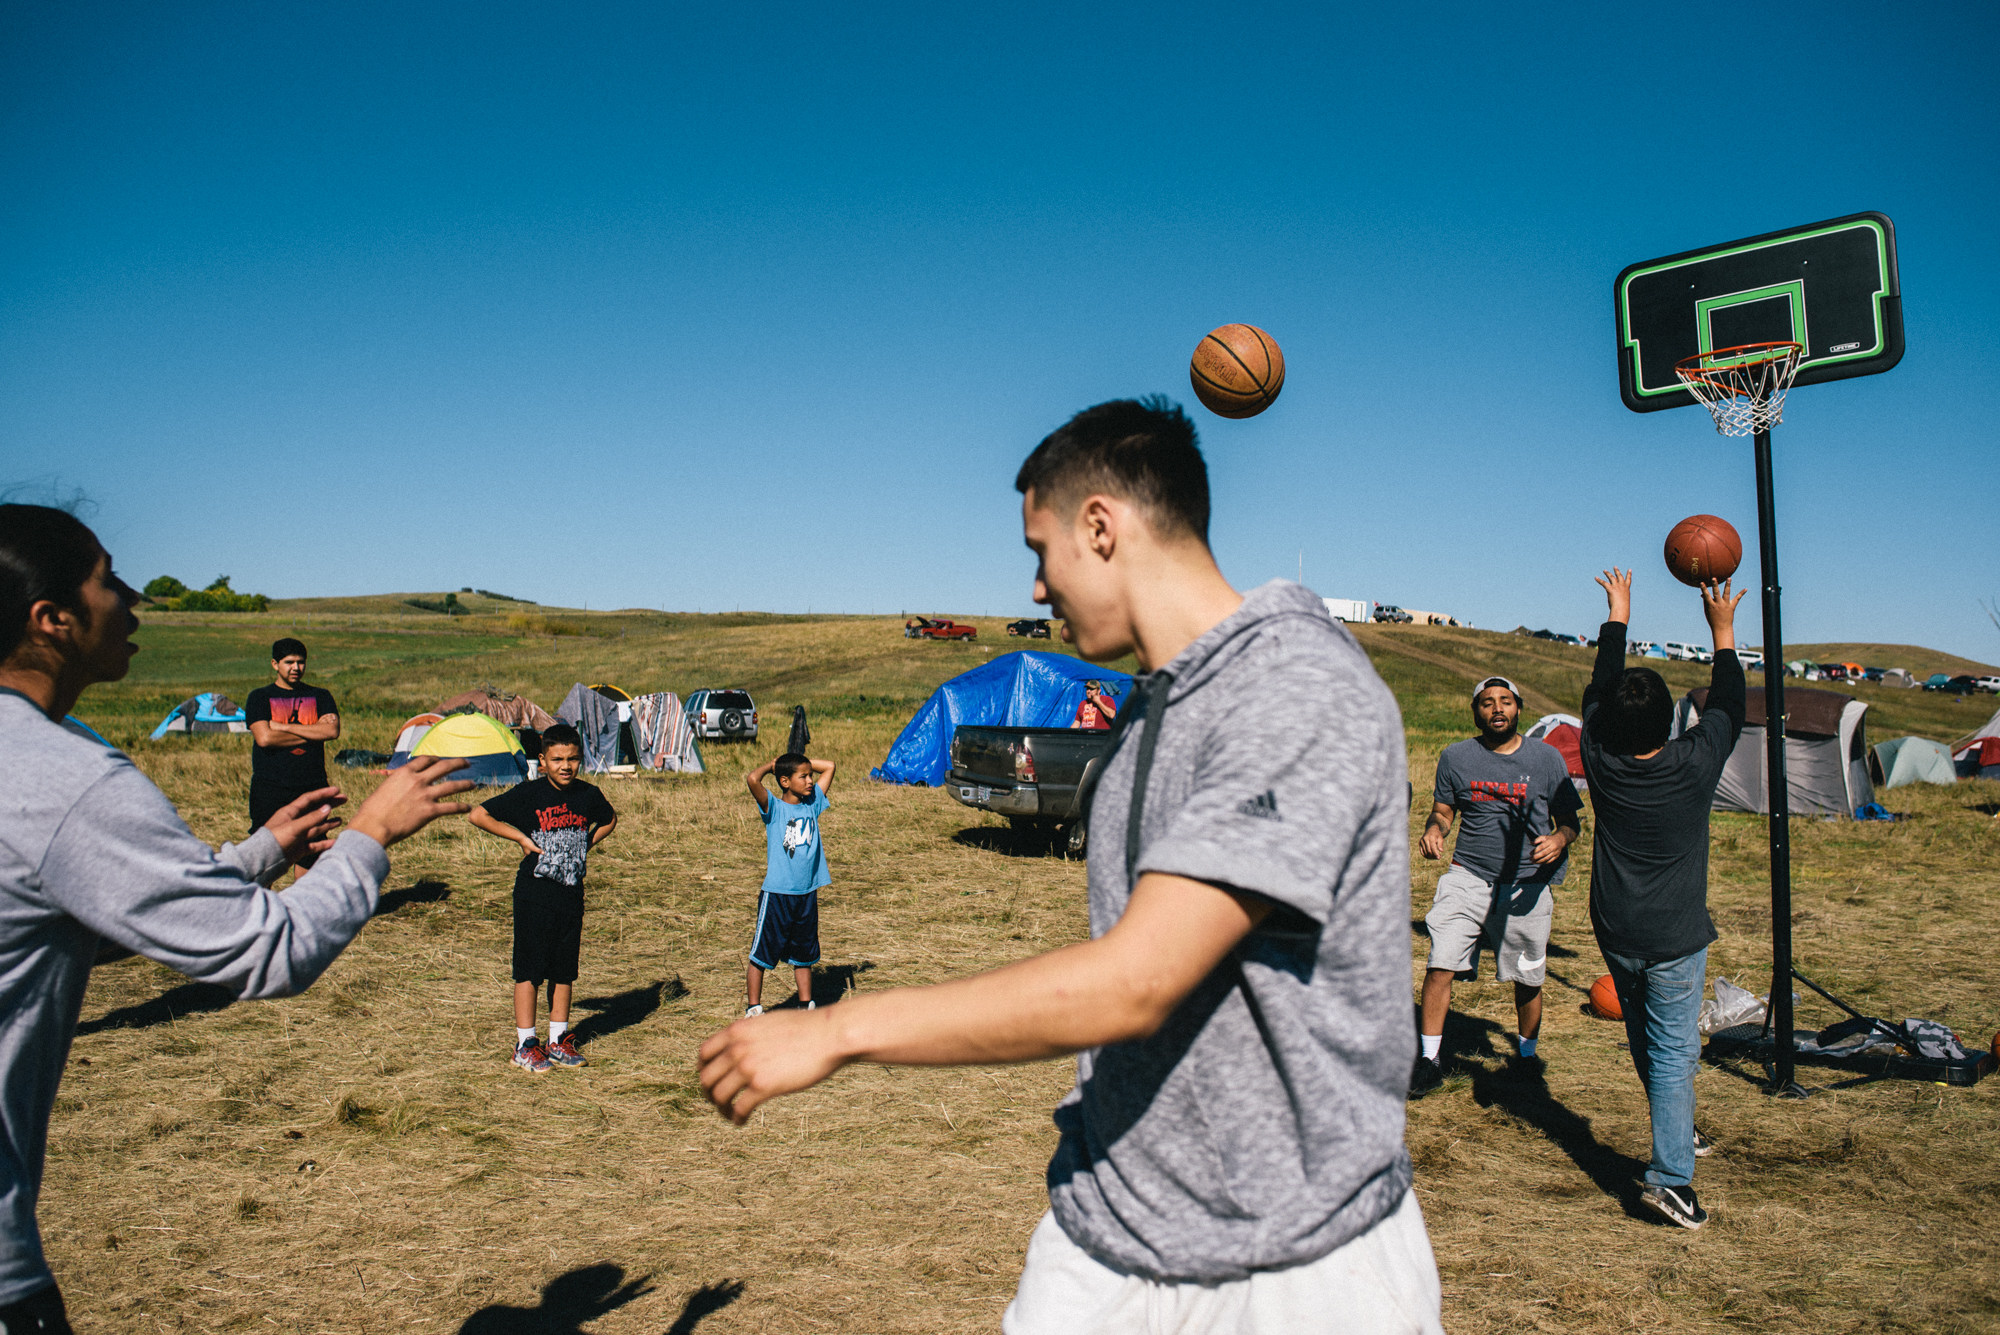 Bronson Koenig joins members of the Dakota Access Pipeline protests near Bismarck, North Dakota on September 17, 2016.(Photo by Alexandra Hootnick/The Players' Tribune)